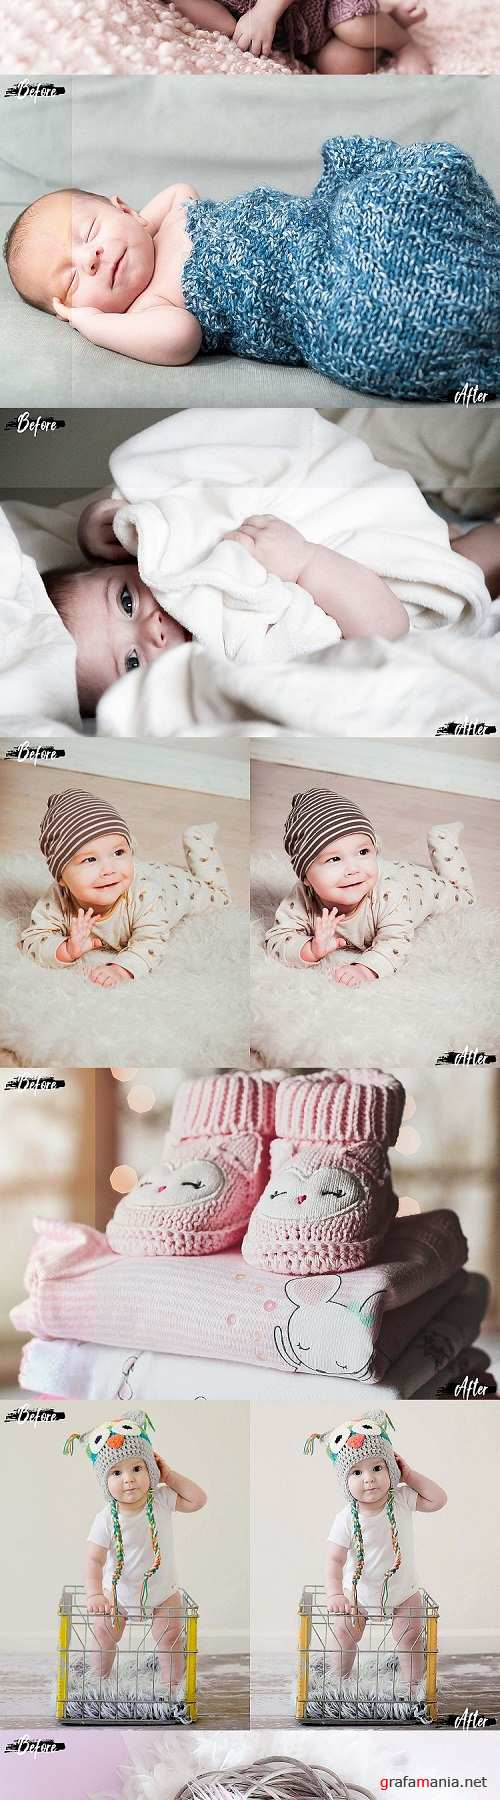 Neo Bambino Theme mobile lightroom presets newborn LR Tone - 248758